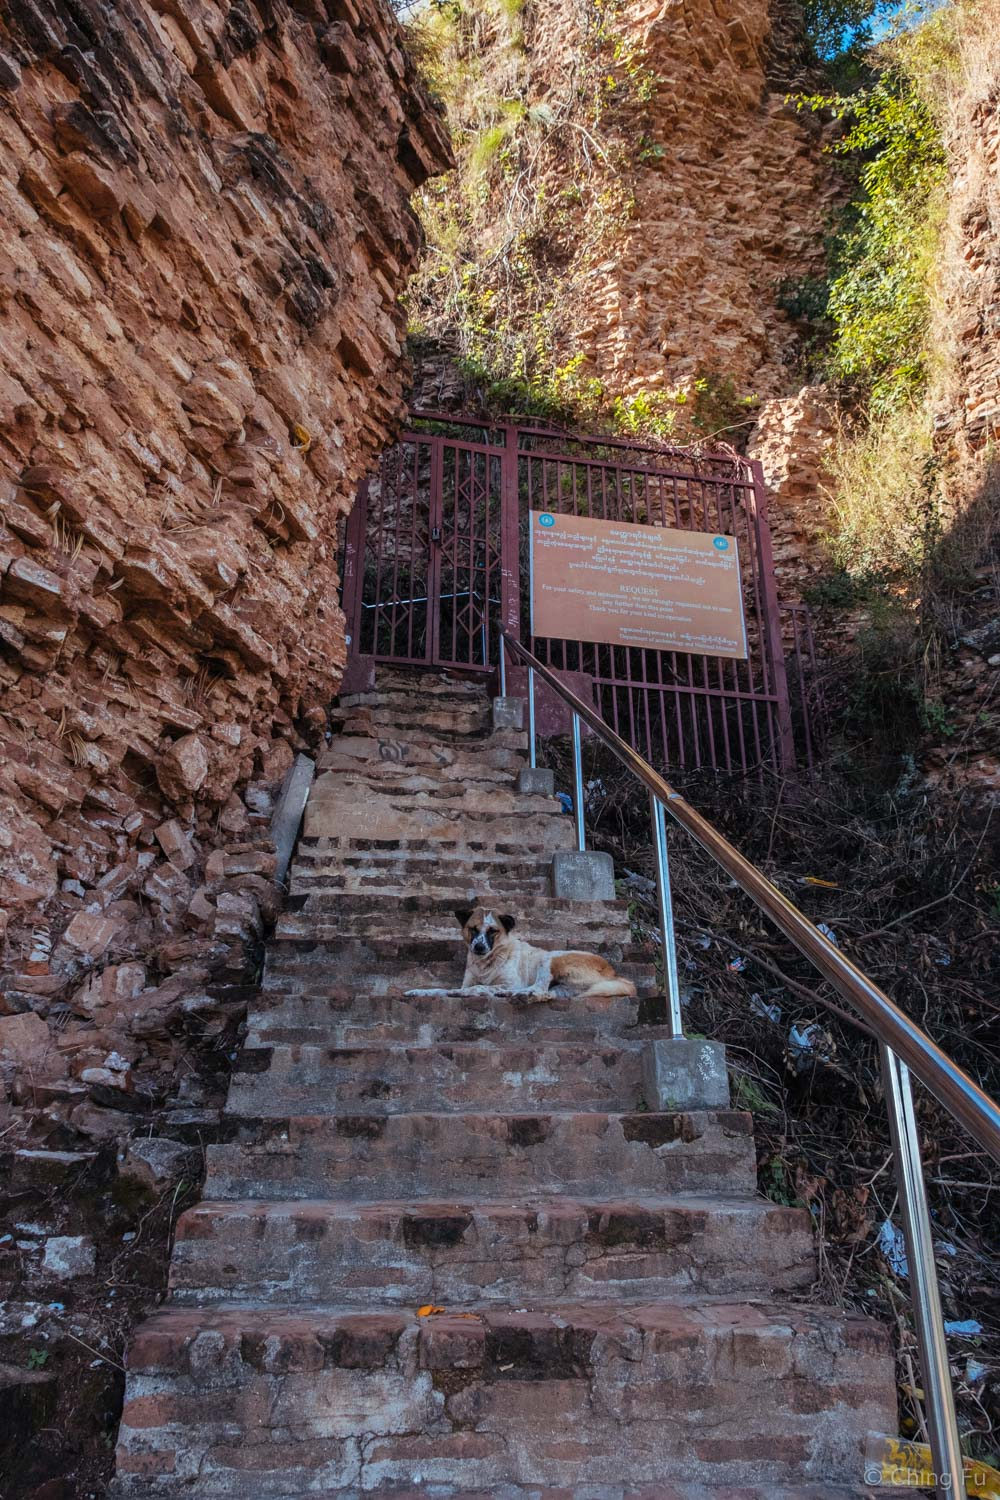 Stairs to the top of Mingun Pahtodawgyi.